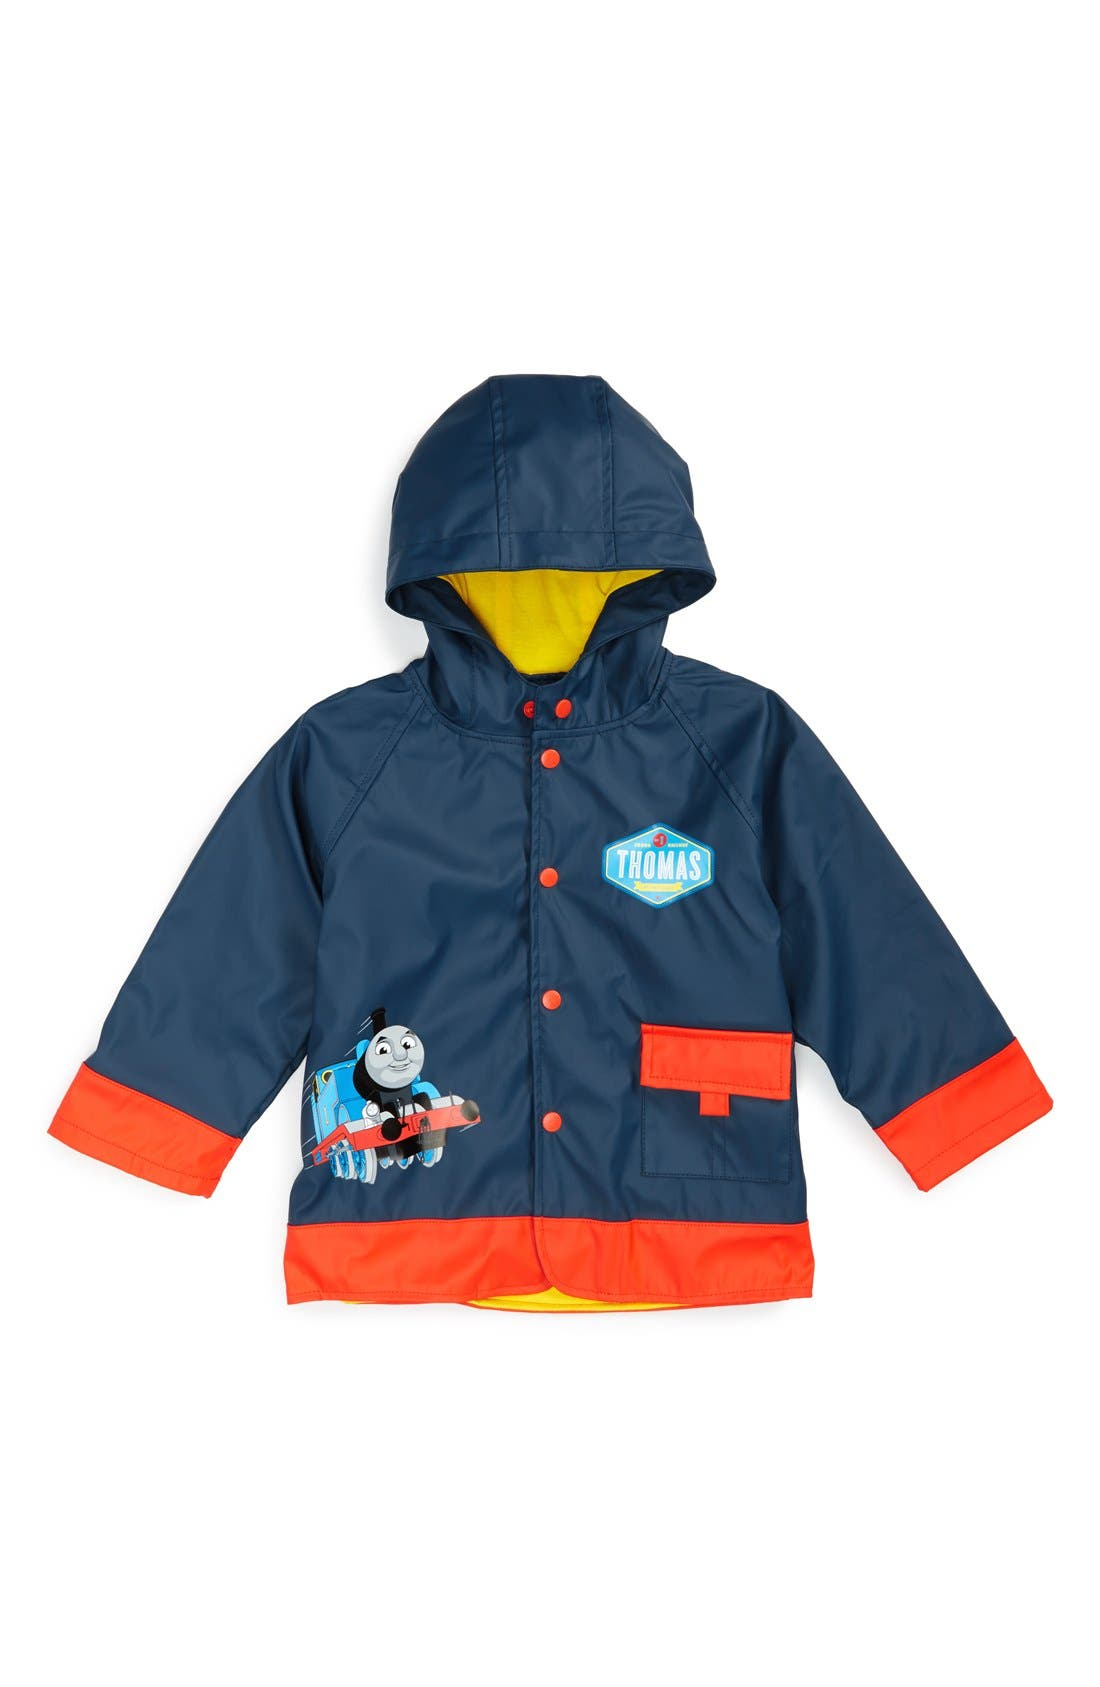 Western Chief 'Thomas the Tank Engine' Raincoat (Toddler & Little Kid)